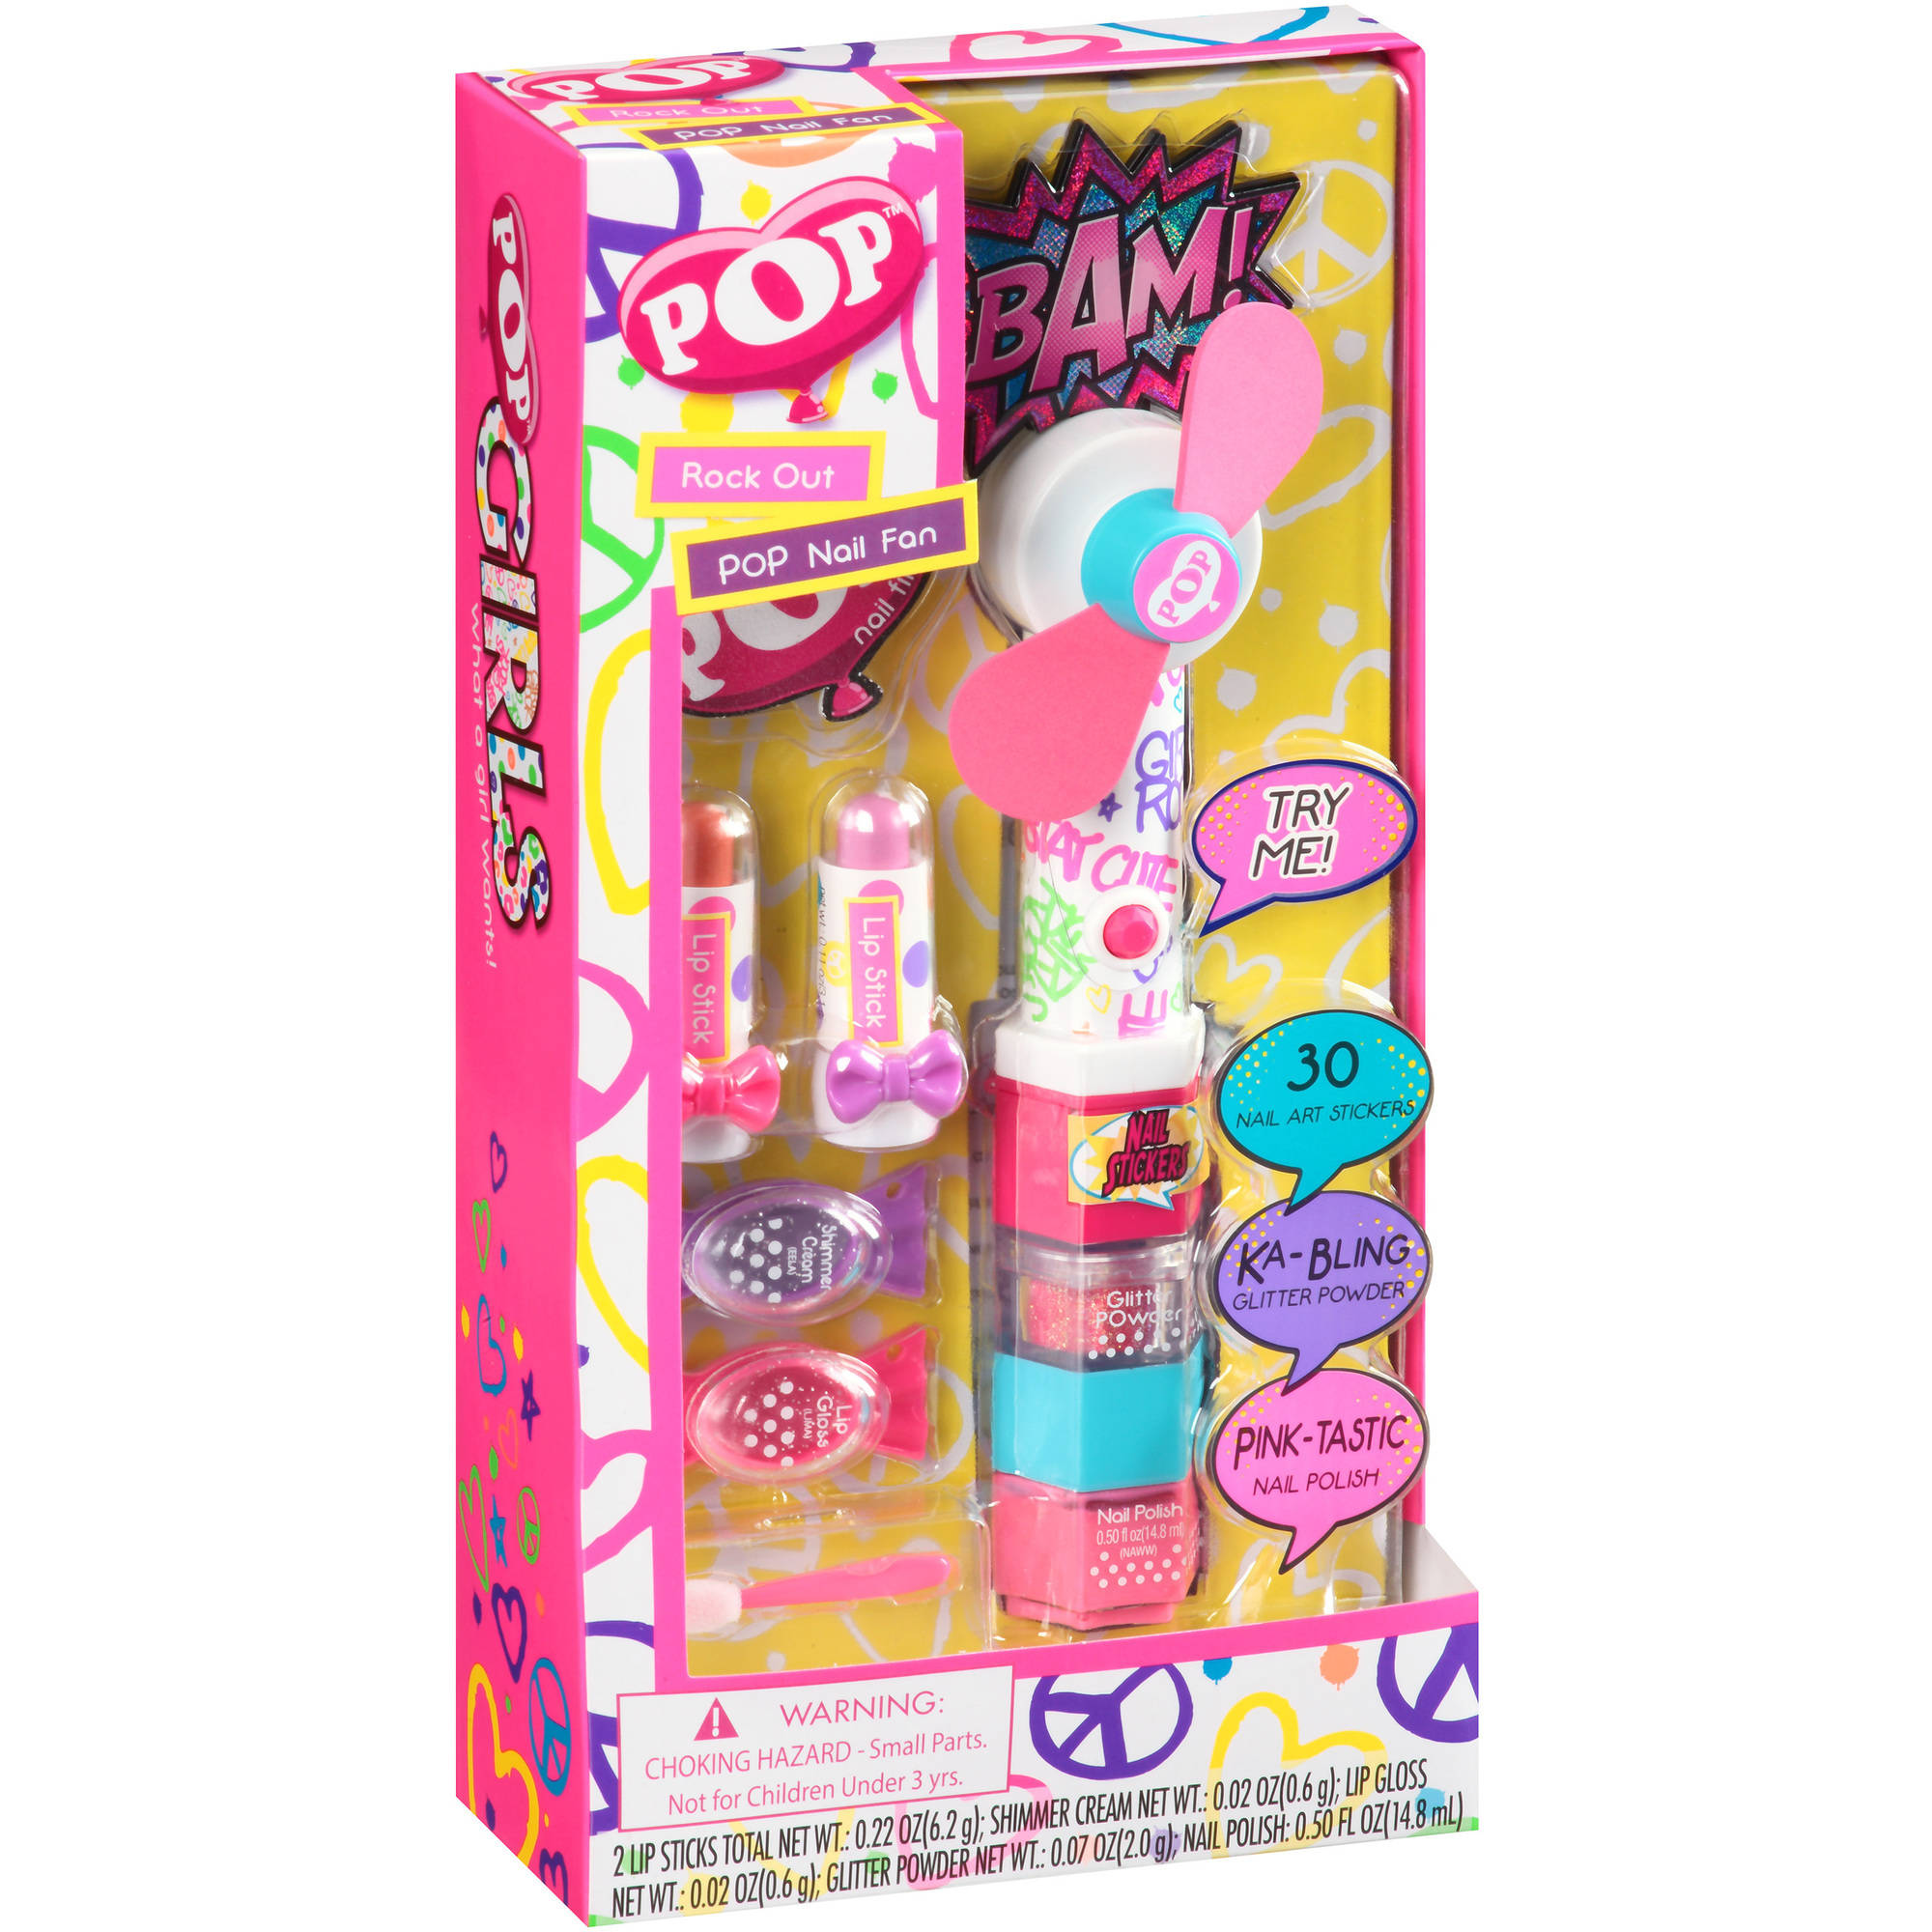 Pop Rock Out Pop Nail Fan Gift Set, 10 pc